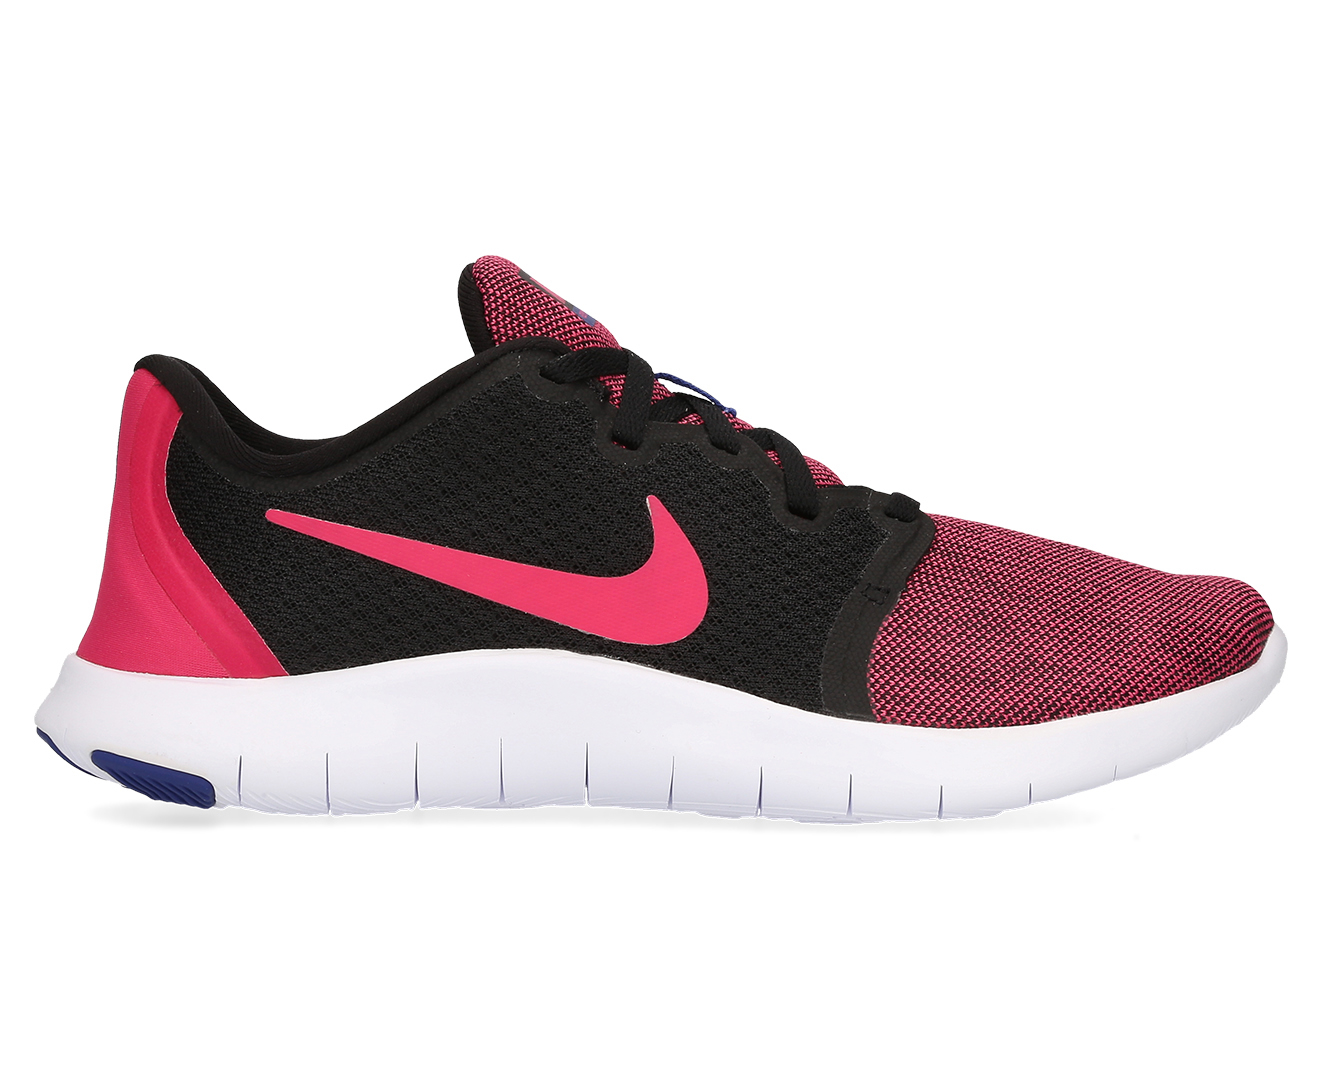 f7f8a78aeb410 Nike Women s Flex Contact 2 Shoe - Black Rush Pink